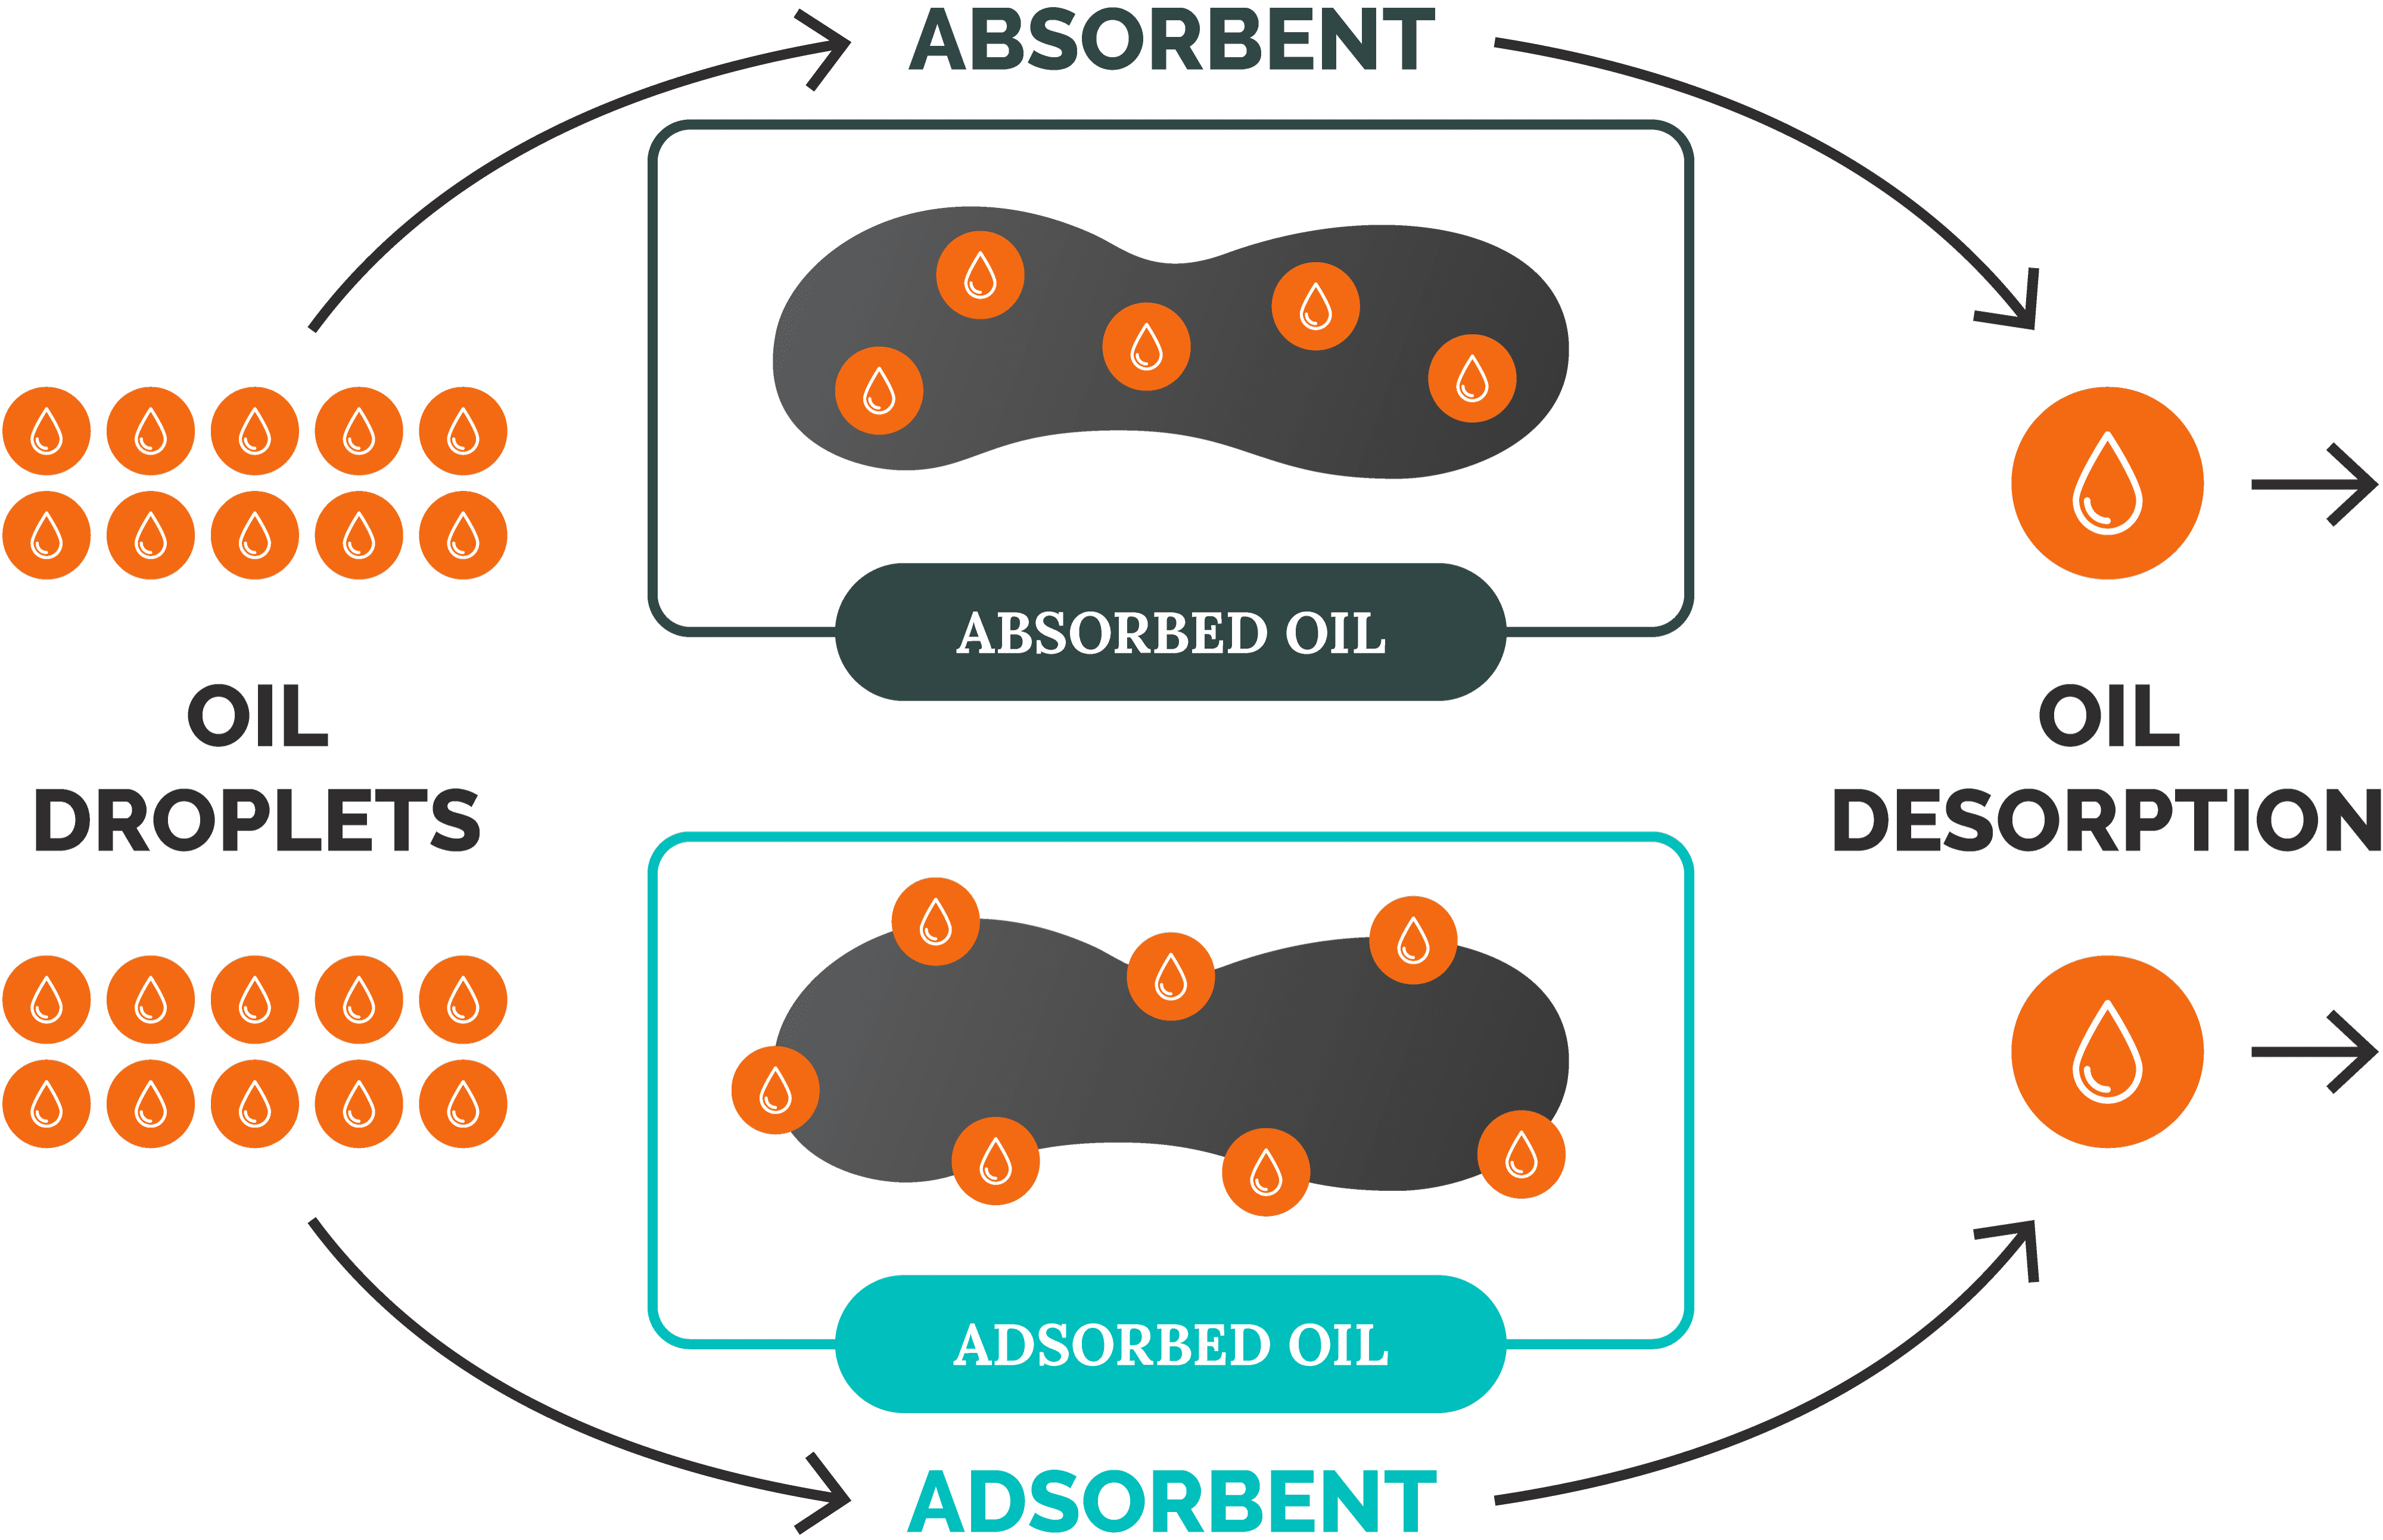 Adsorption vs absorption of oil by an oil separator